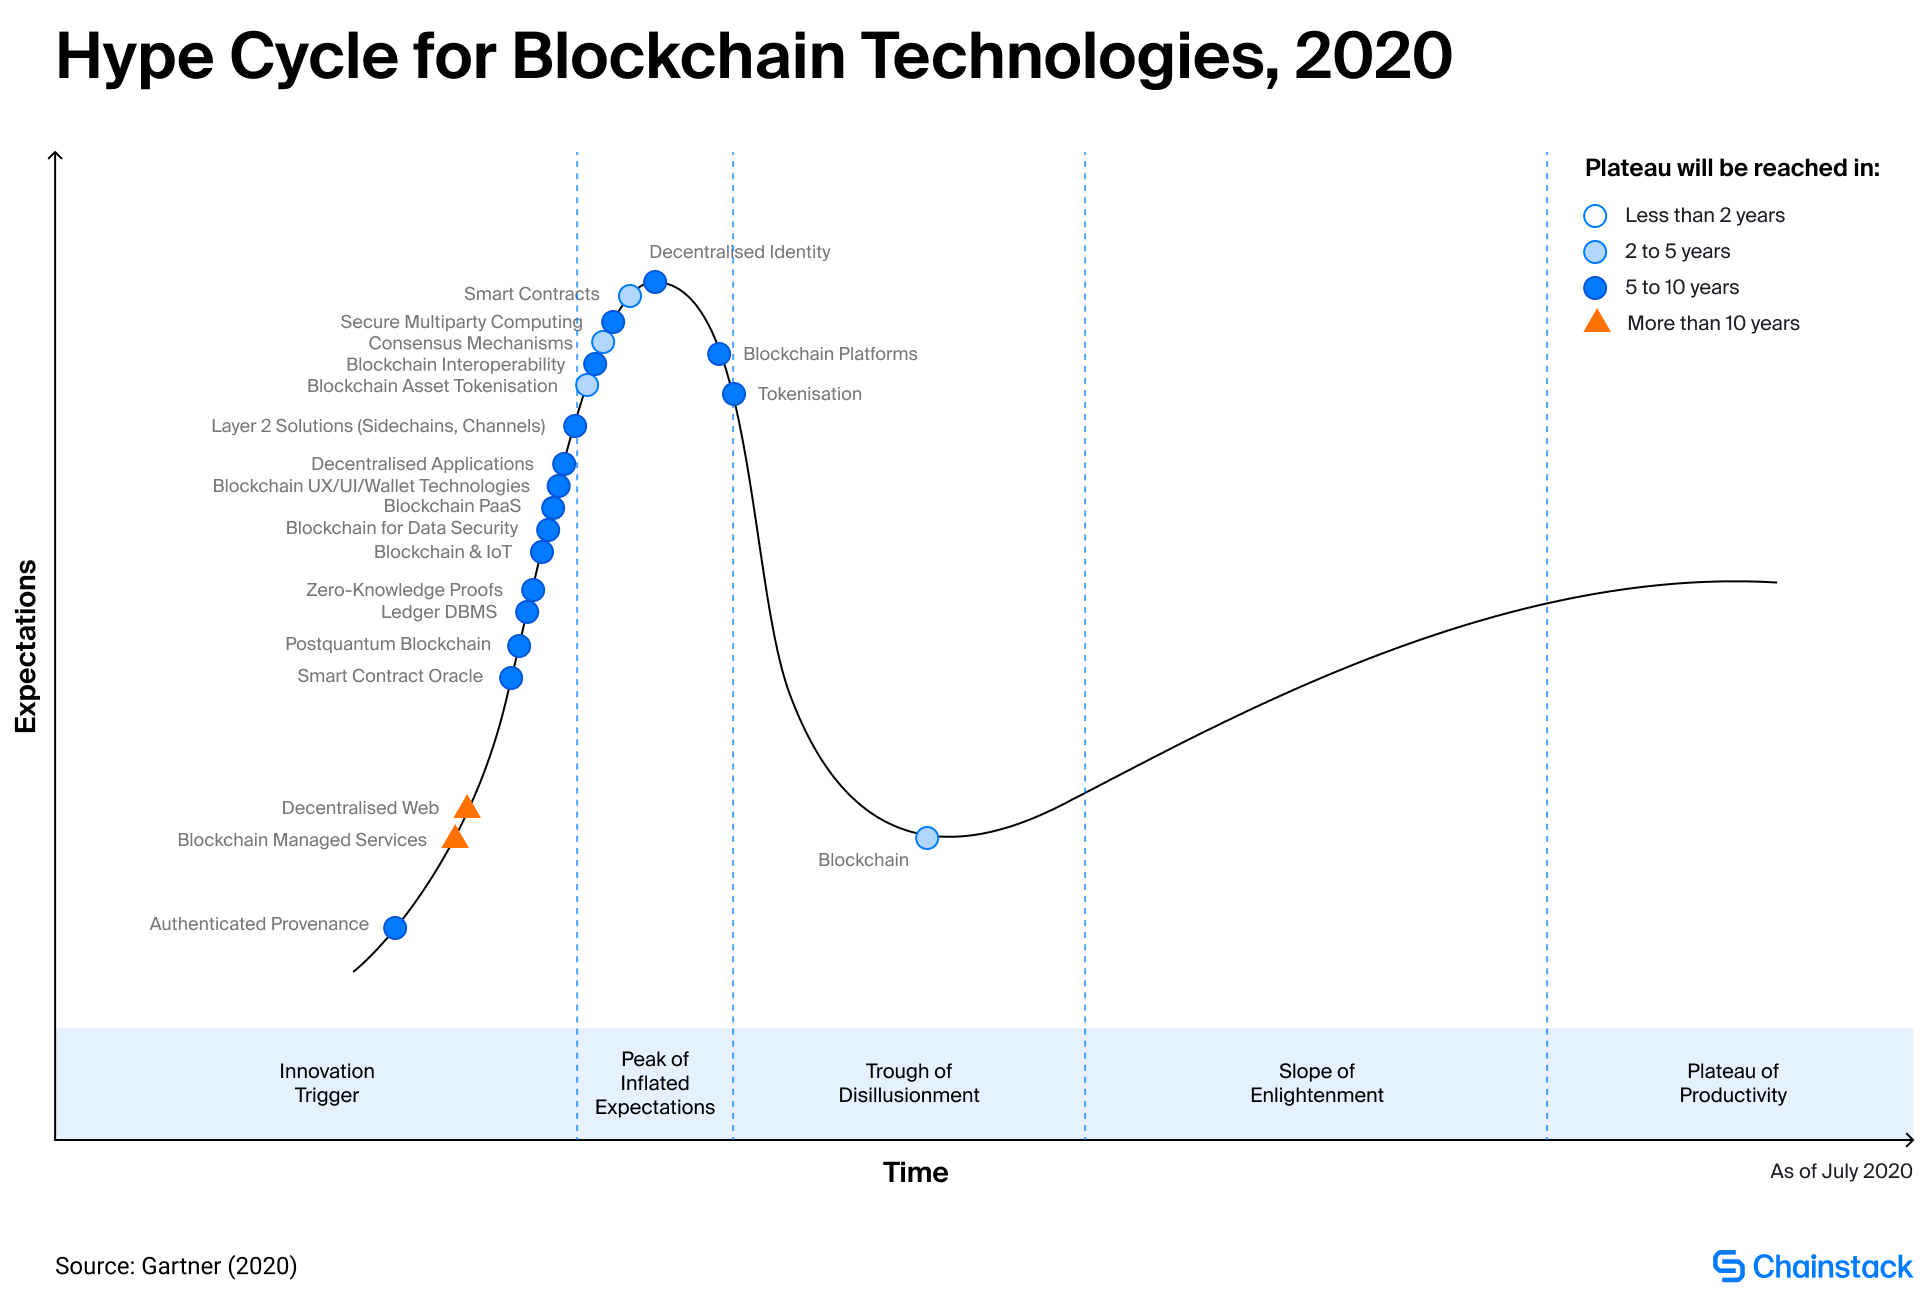 Hype cycle for blockchain technologies, 2020